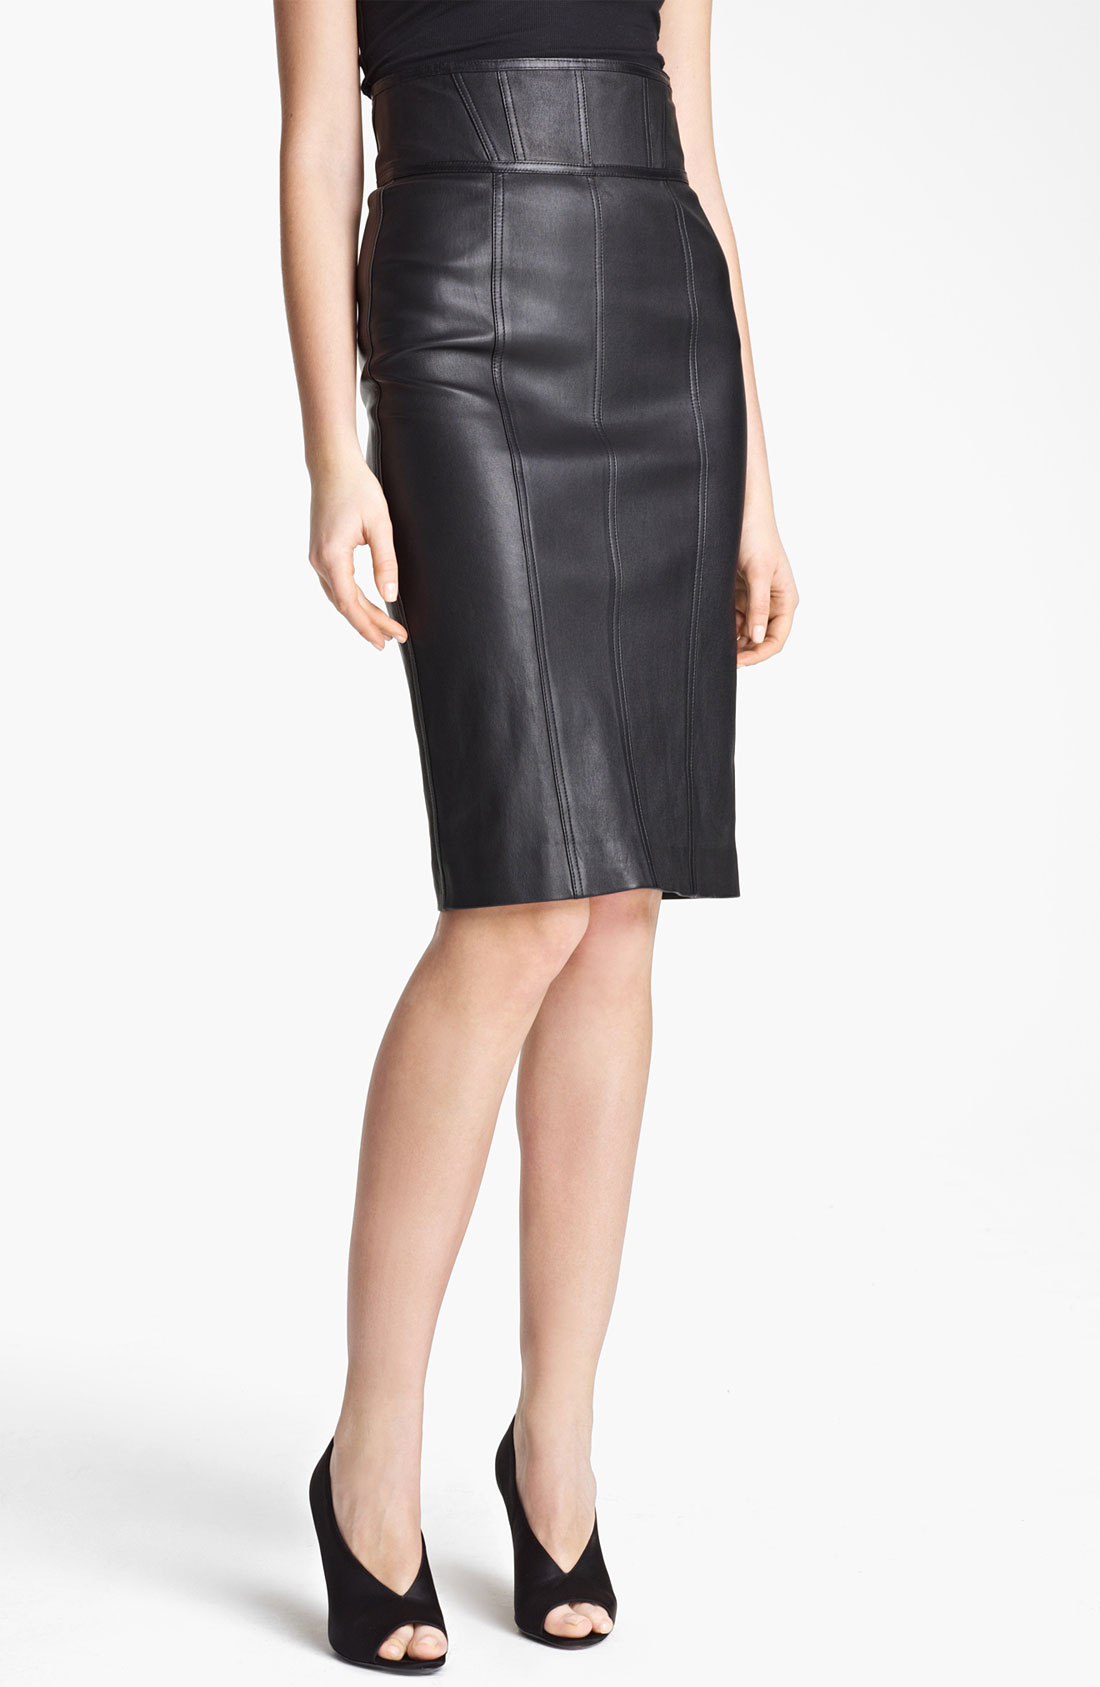 Burberry High Waist Leather Skirt in Black | Lyst